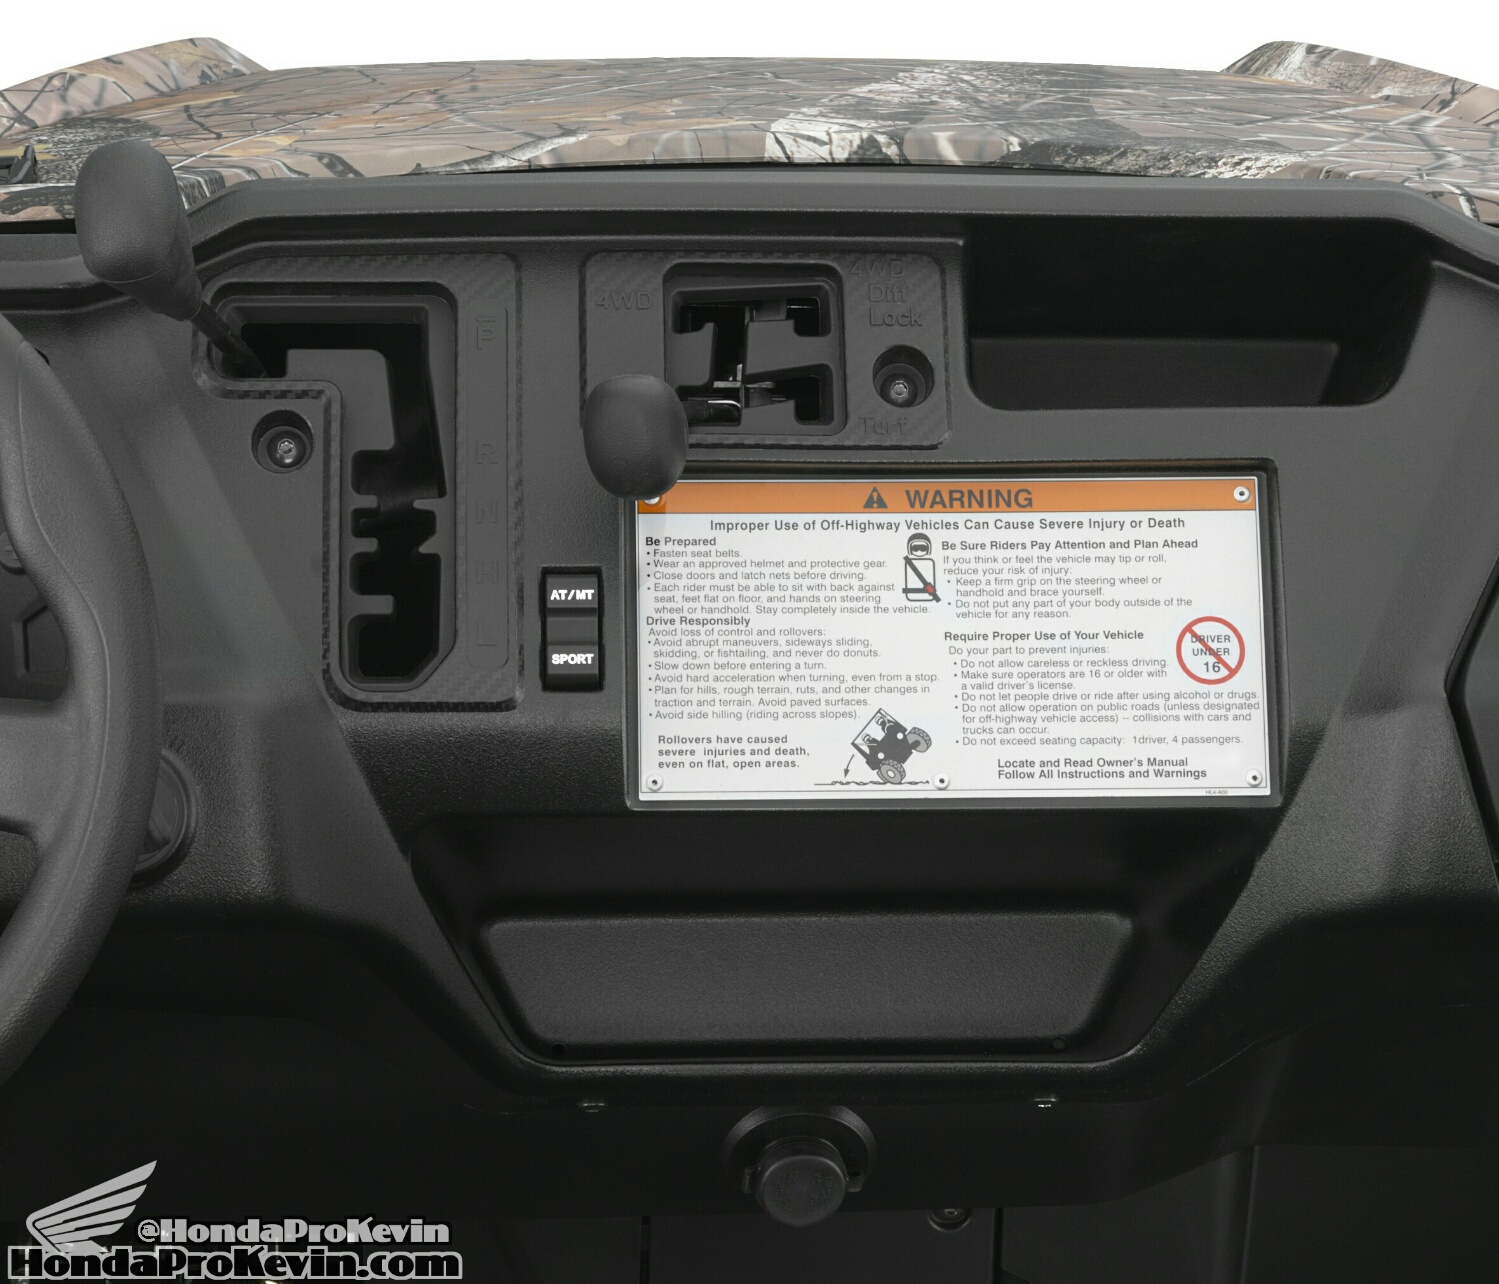 2016 Honda Pioneer 1000 Transmission / Drivetrain Controls - Locking Differential - 4x4 Modes